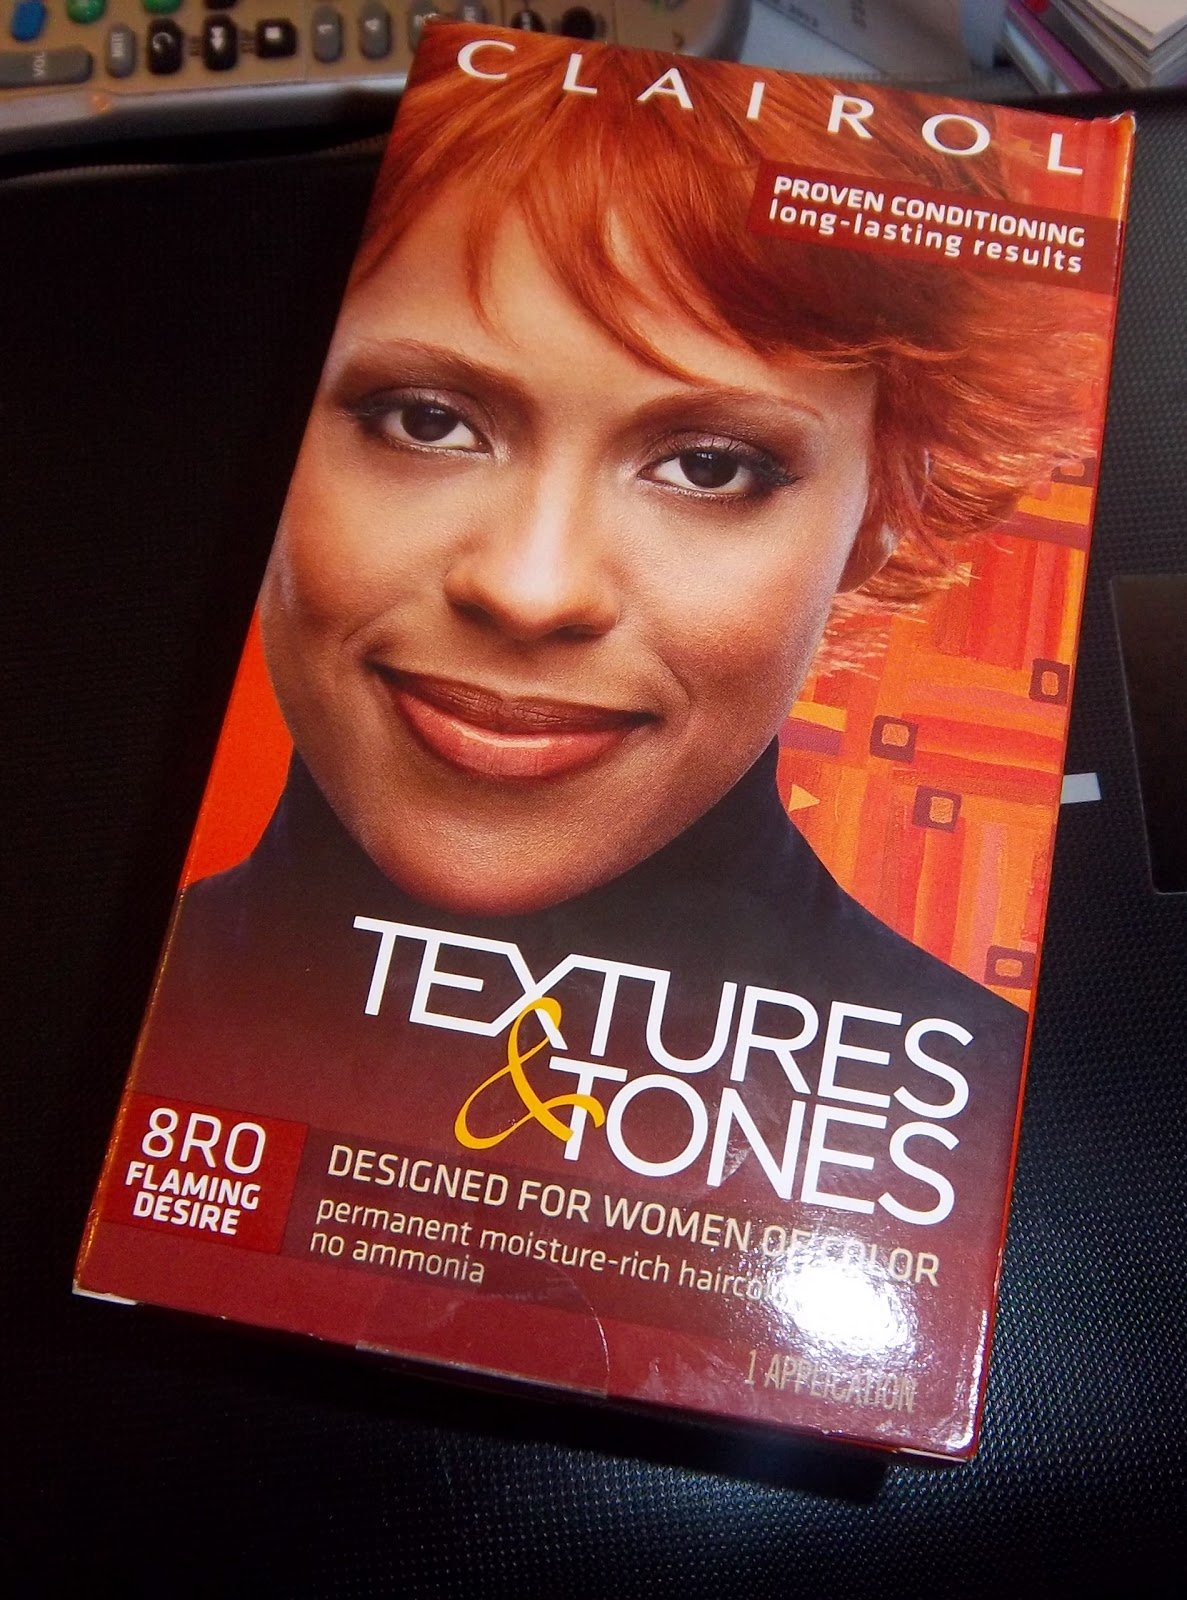 The Best Rural Glamour I Colored My Hair Clairol Textures Tones In Flaming Desire Pictures